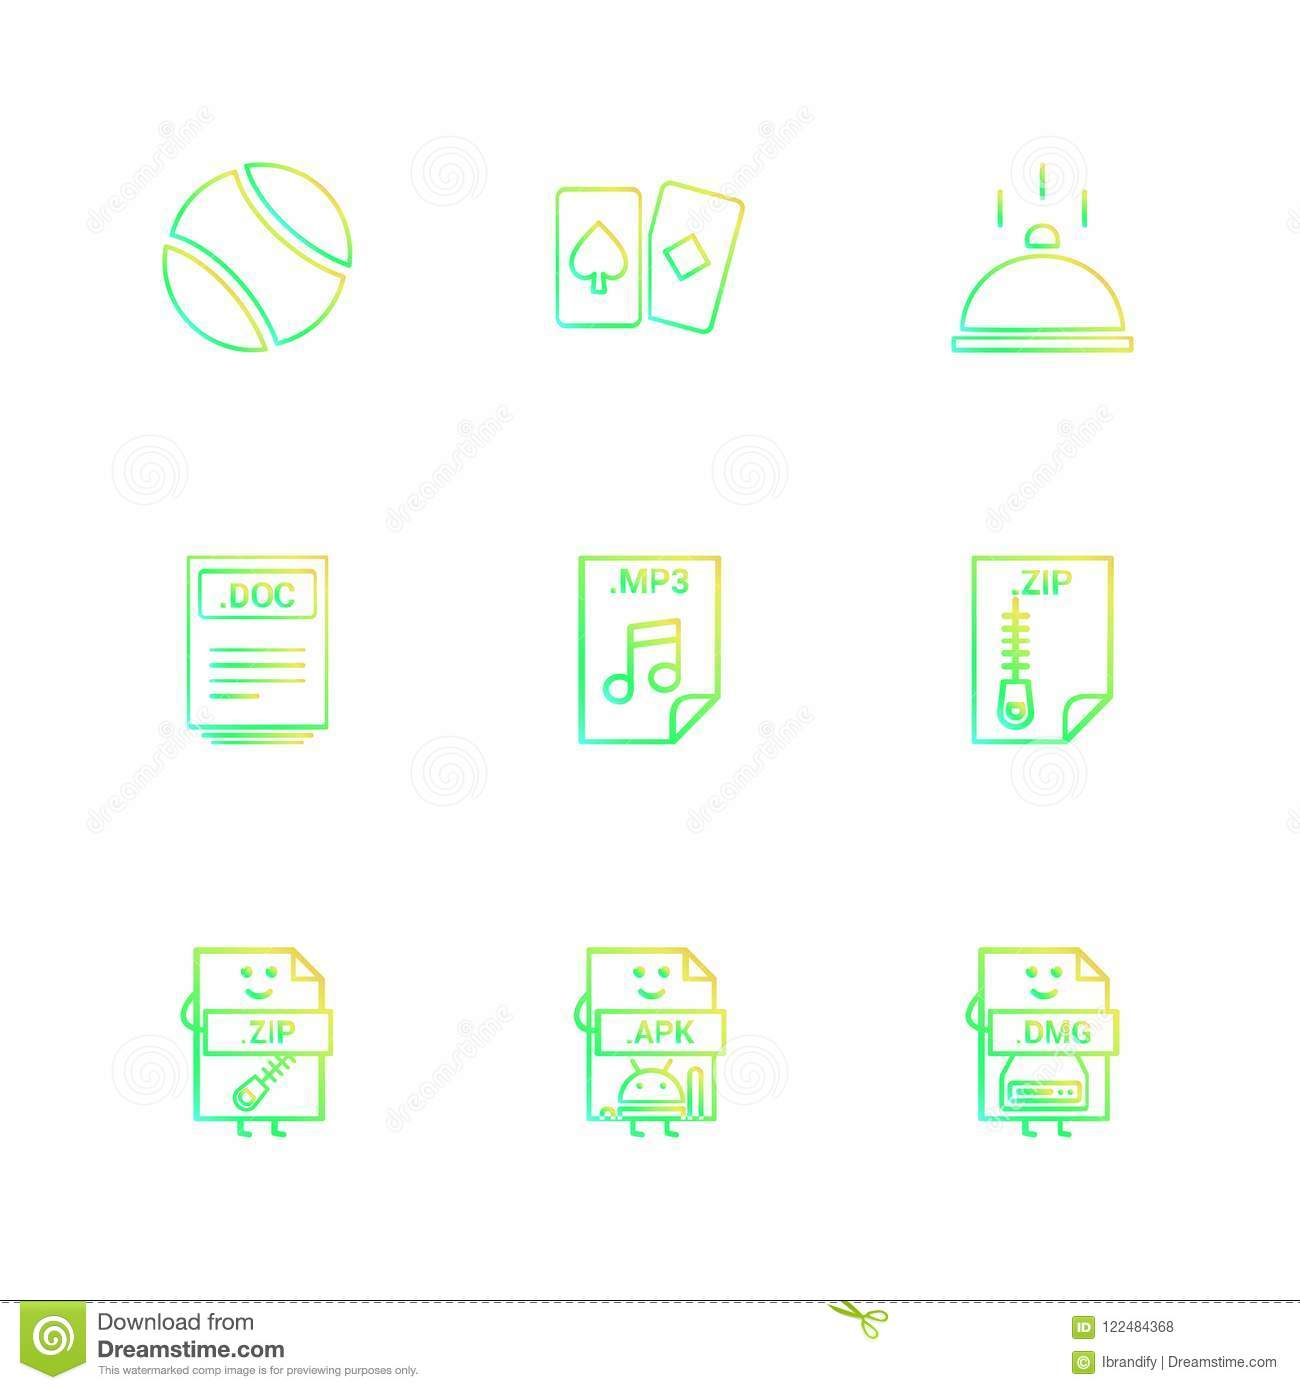 Ball , Card , Dish , Doc , Word File , Zip , Compressed File , M